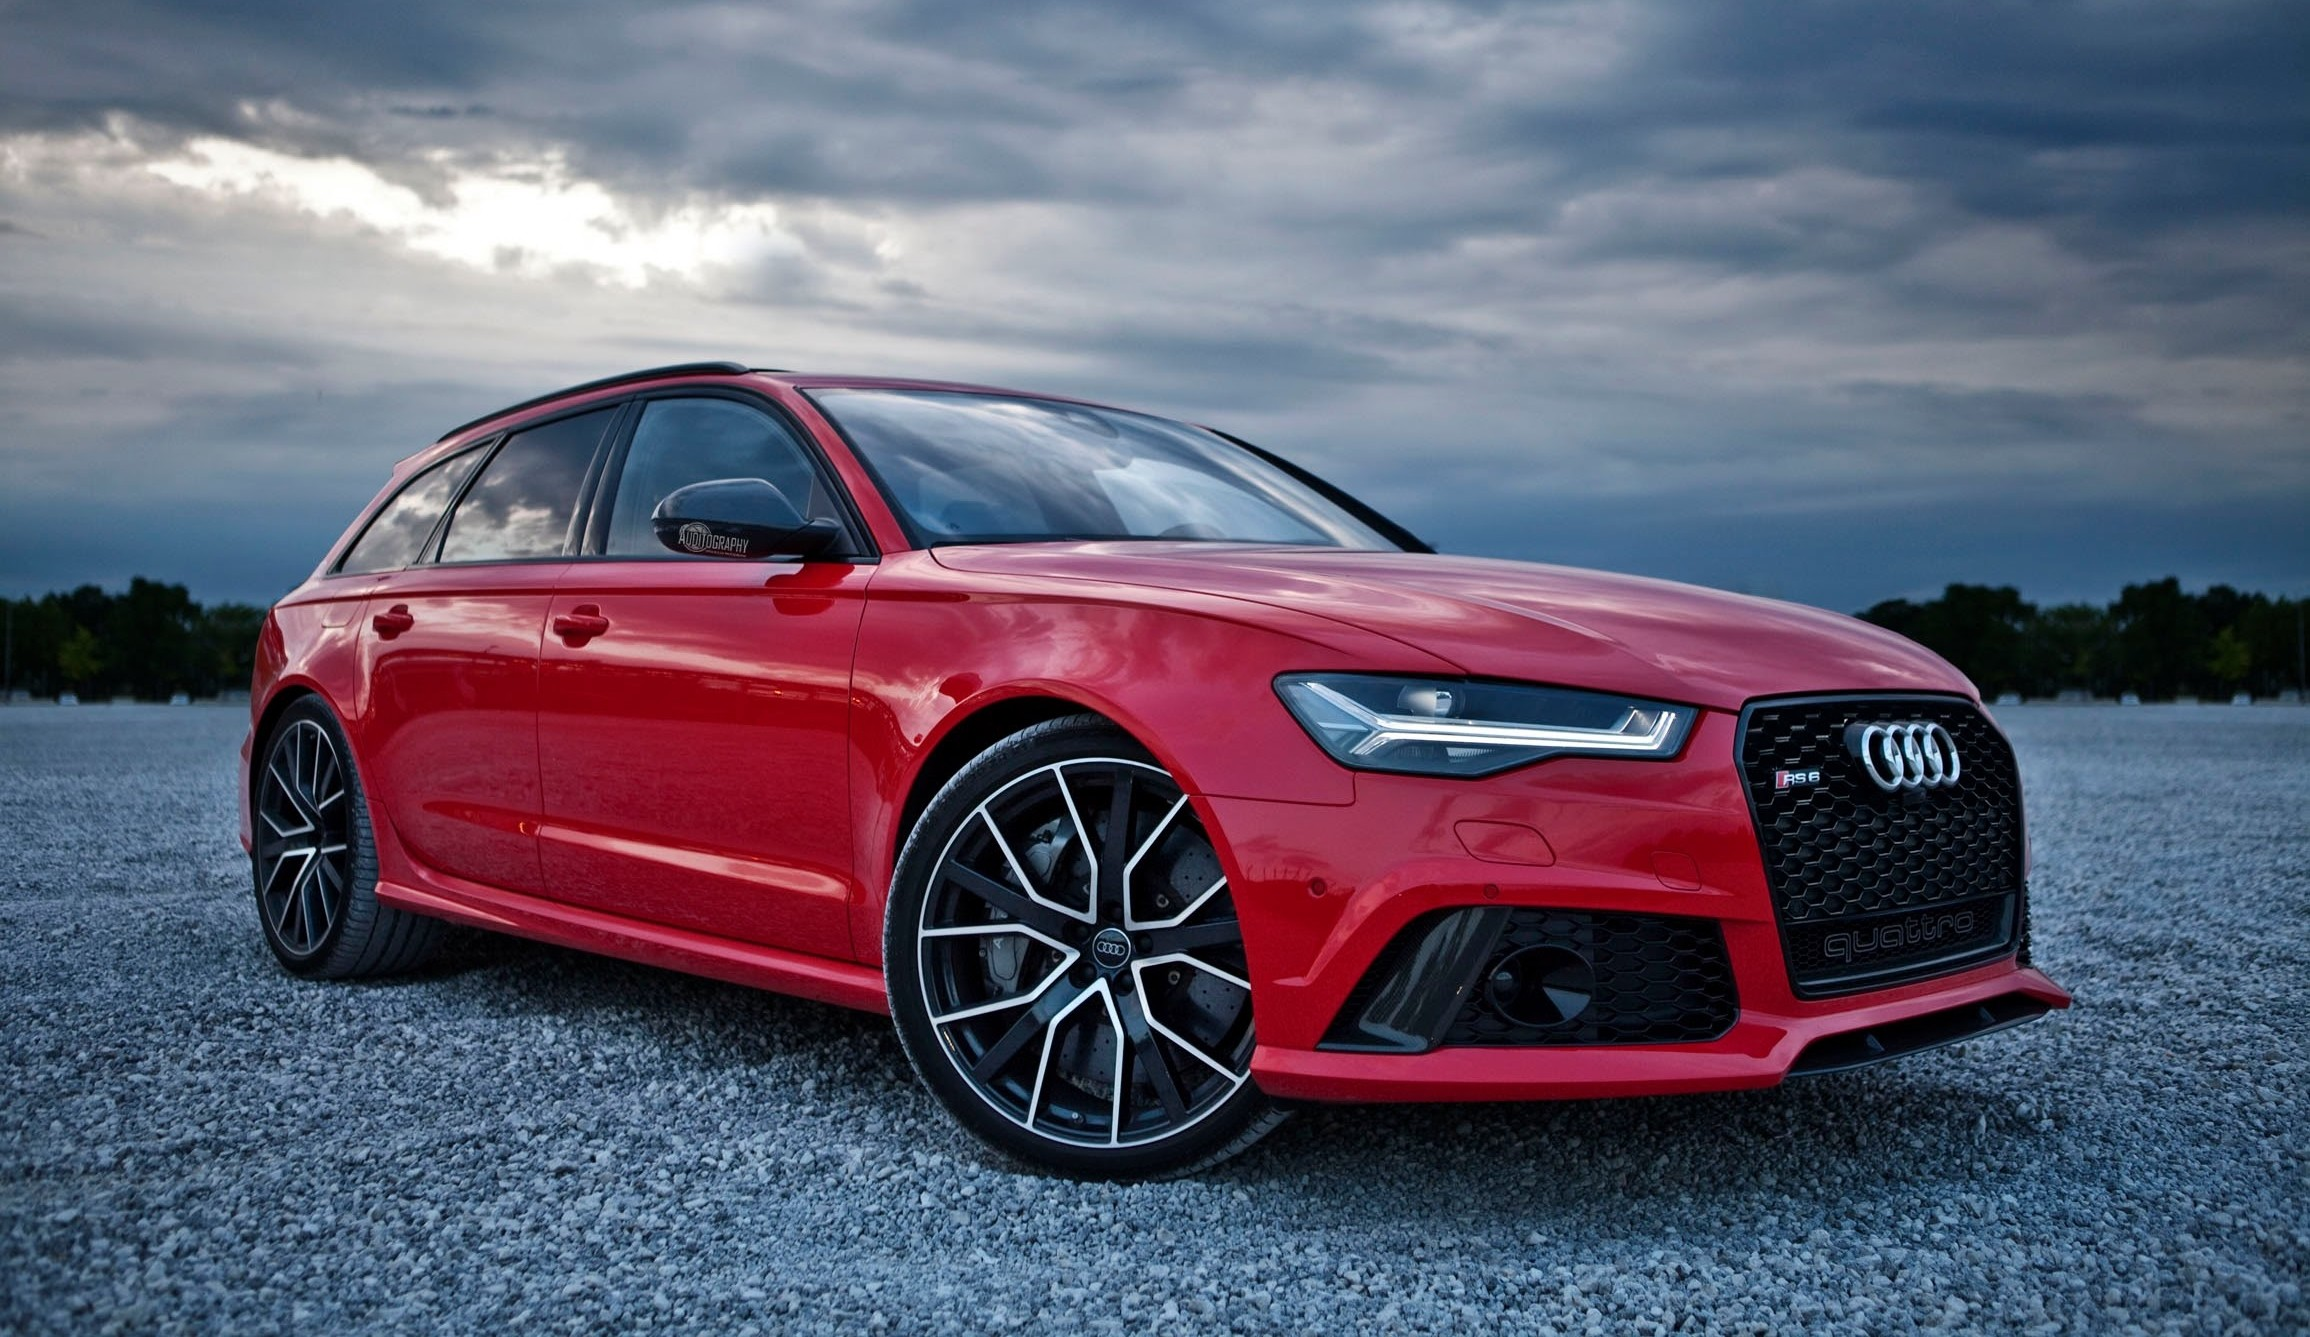 605hp monster audi rs6 avant performance. Black Bedroom Furniture Sets. Home Design Ideas